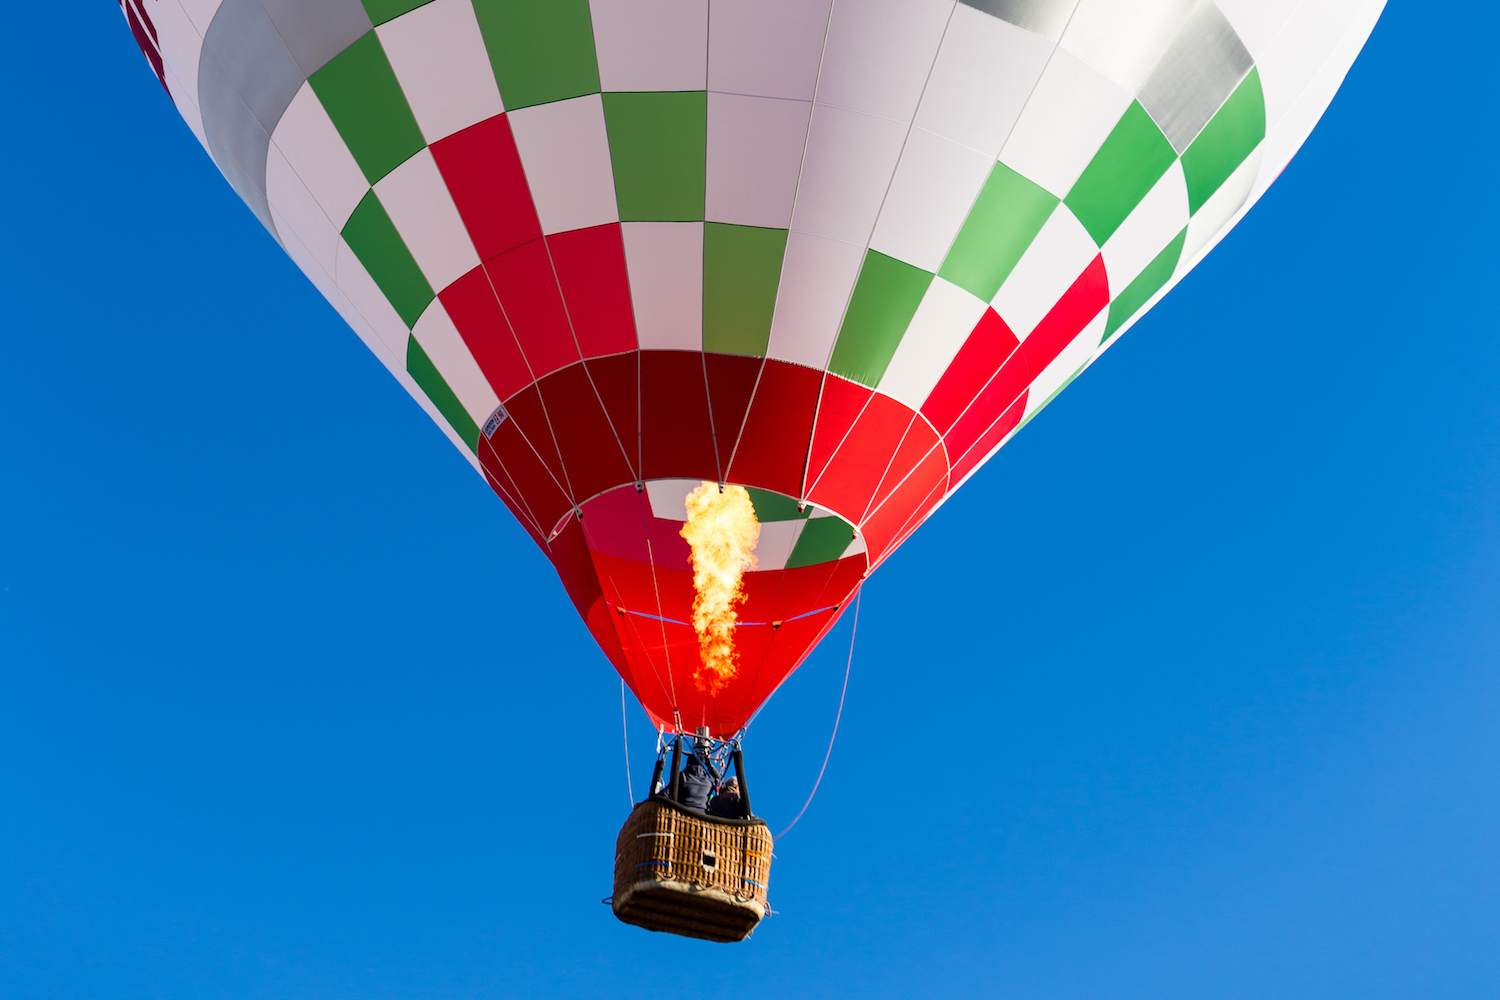 Above $9.3K: Bitcoin's Price Prints 13-Month High - CoinDesk